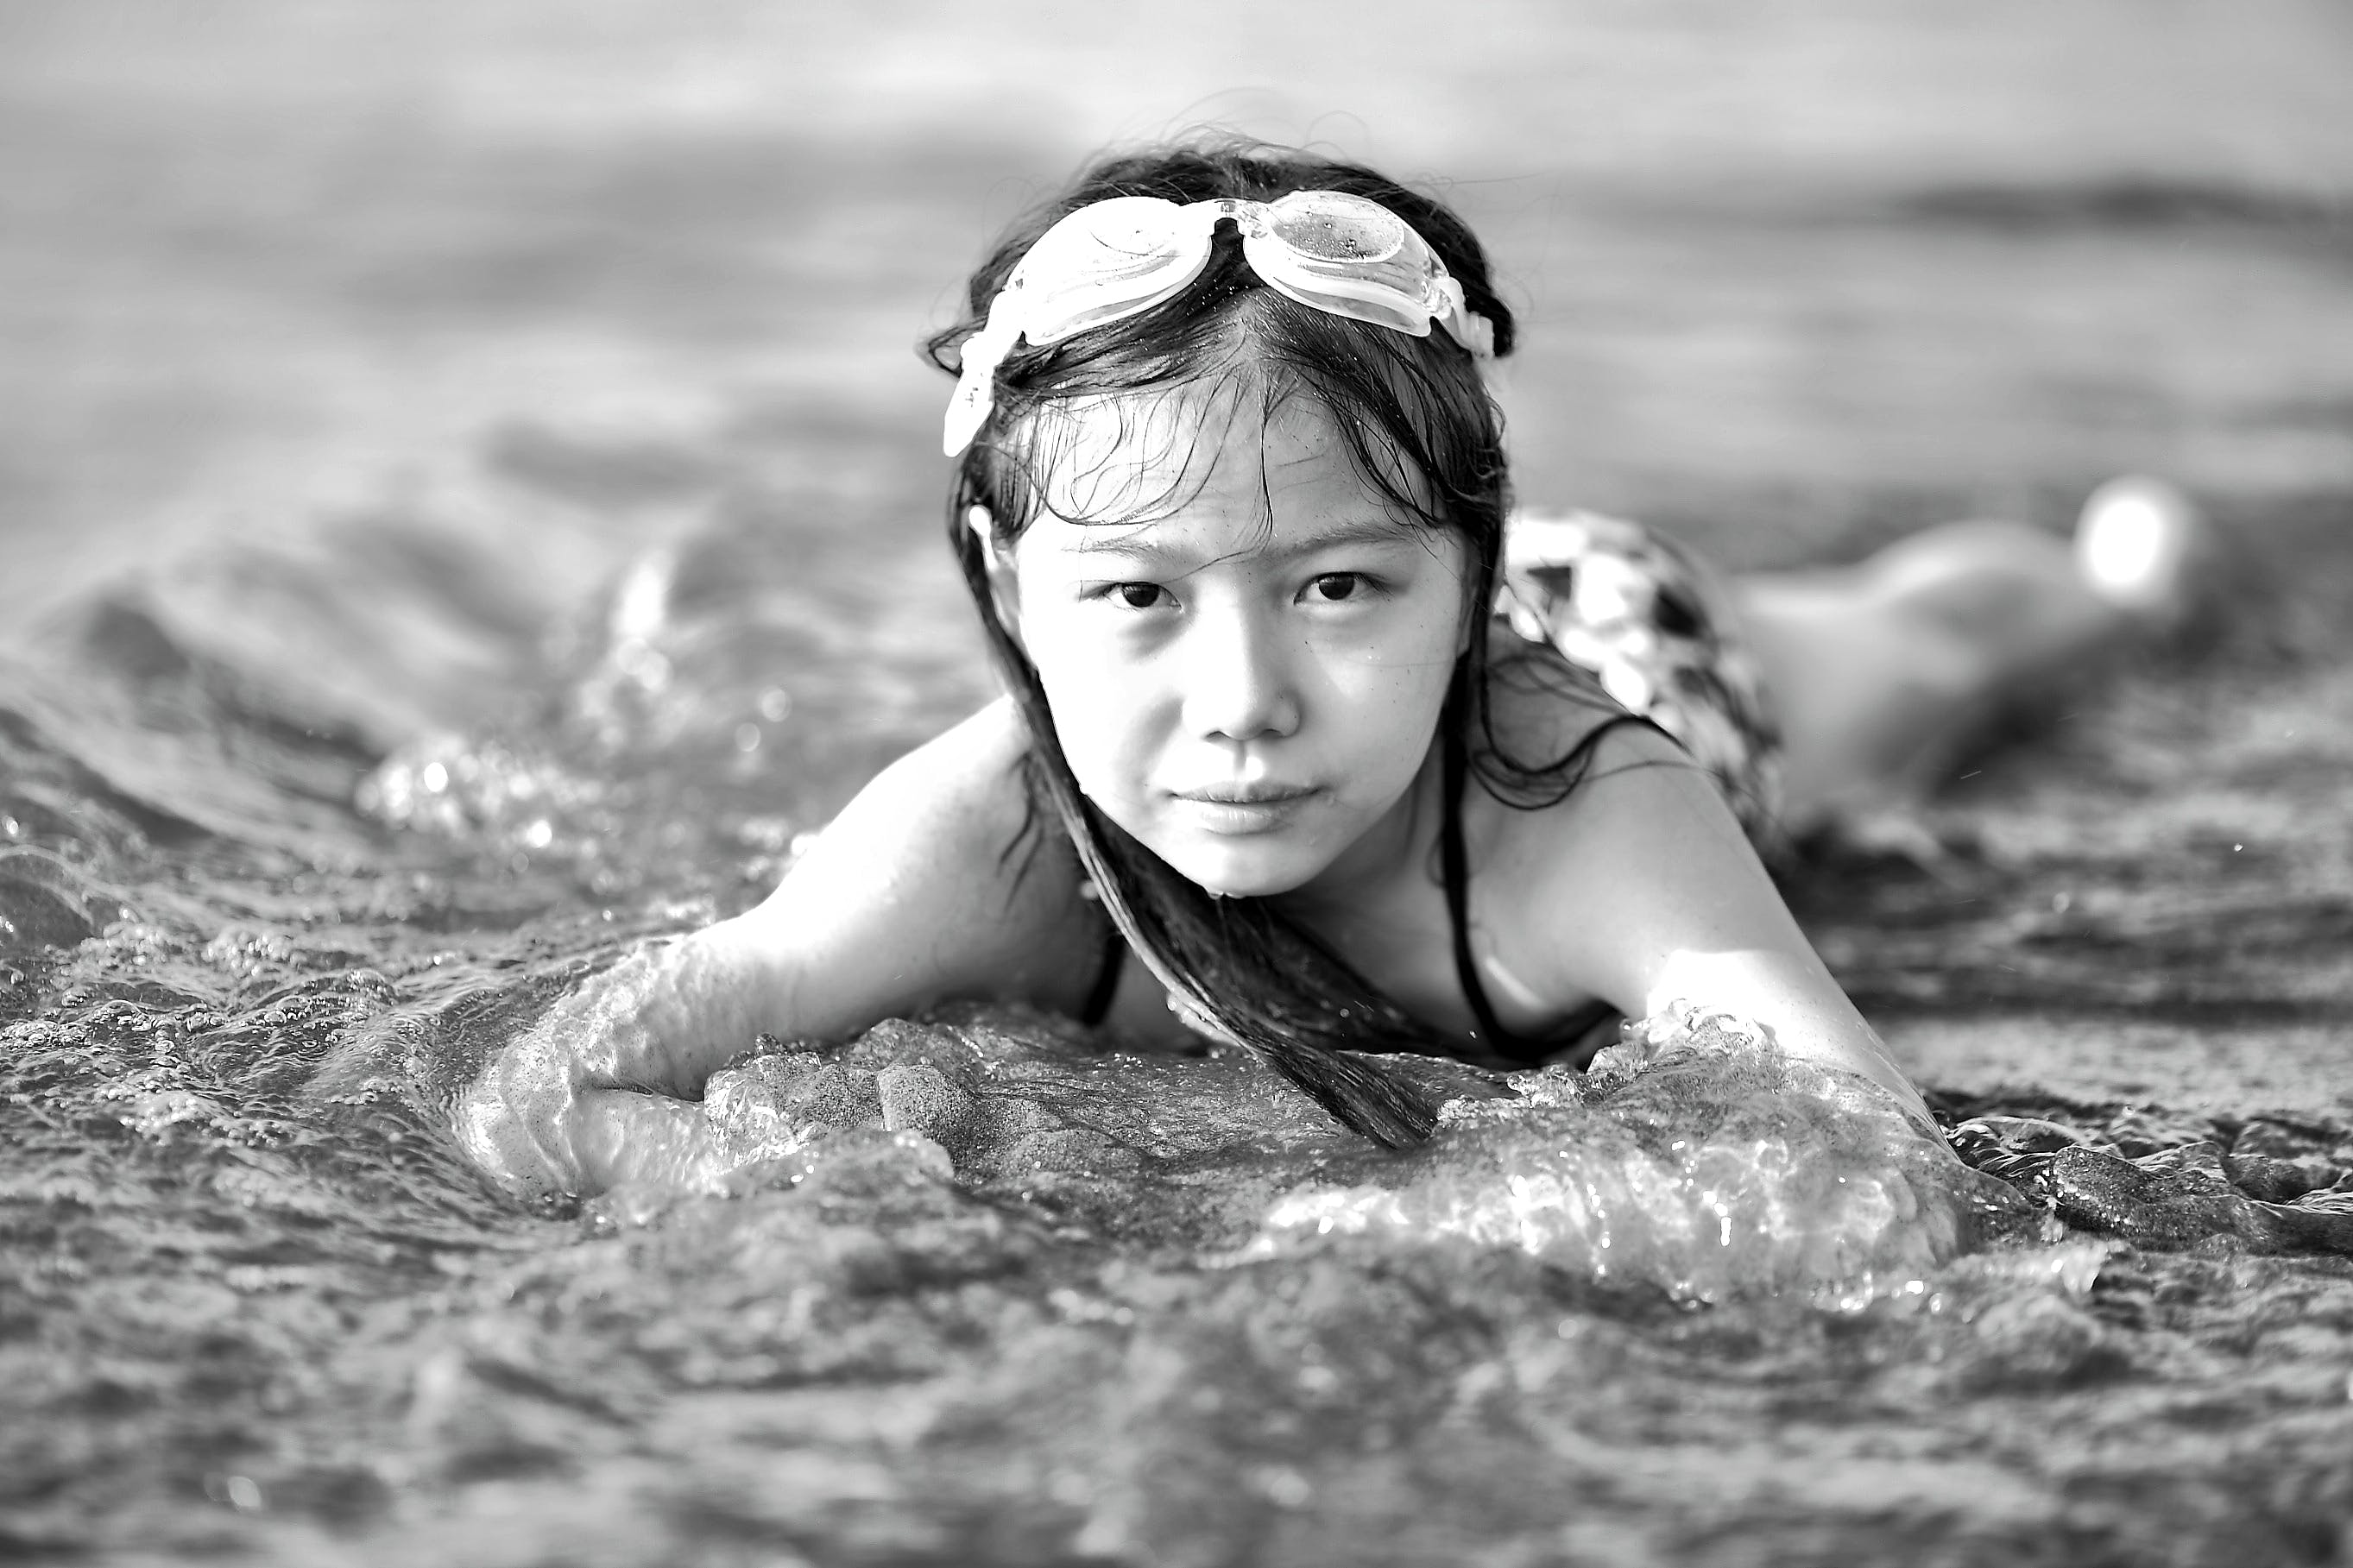 Girl Wearing Goggles on Beach in Black and White